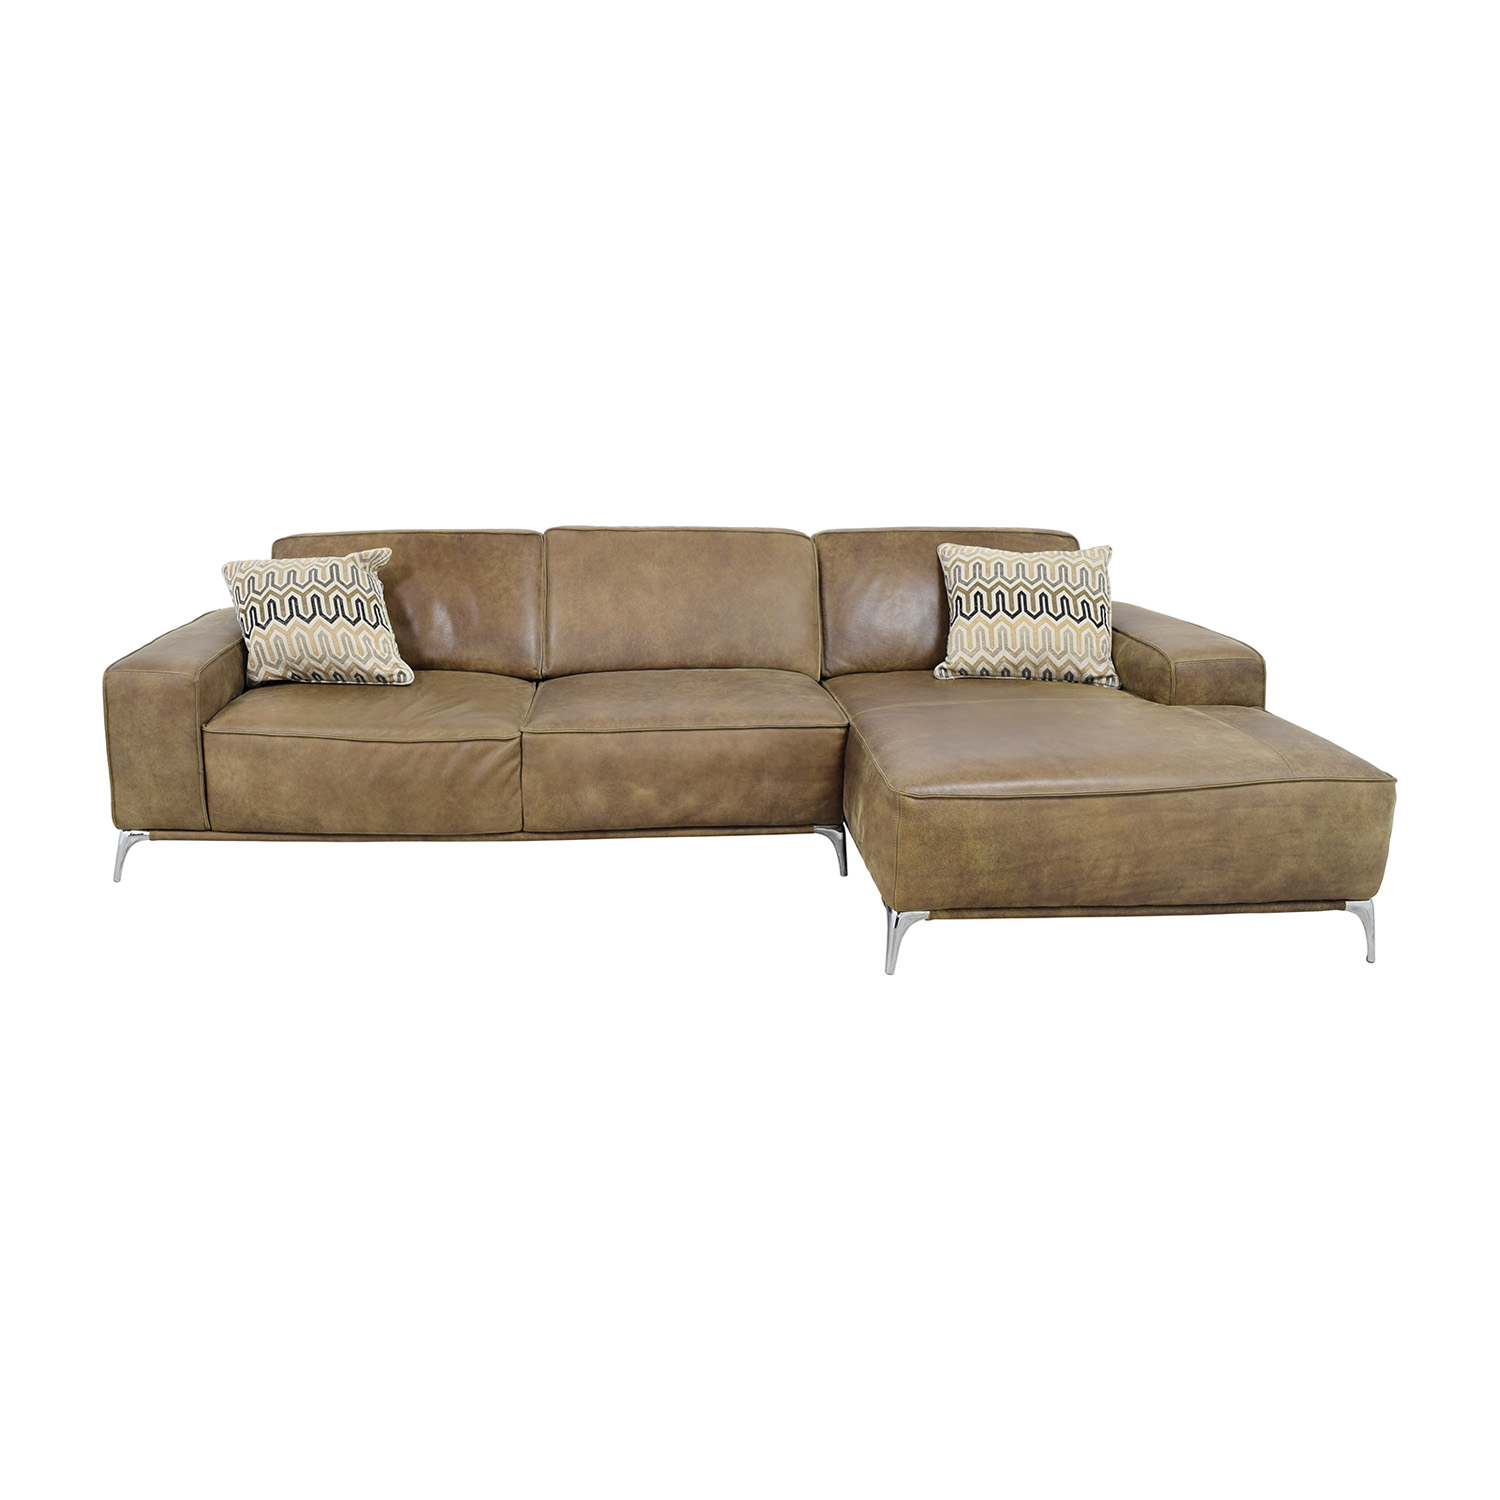 Giuseppe Nicolette Giuseppe Nicolette Tan Leather Sectional discount